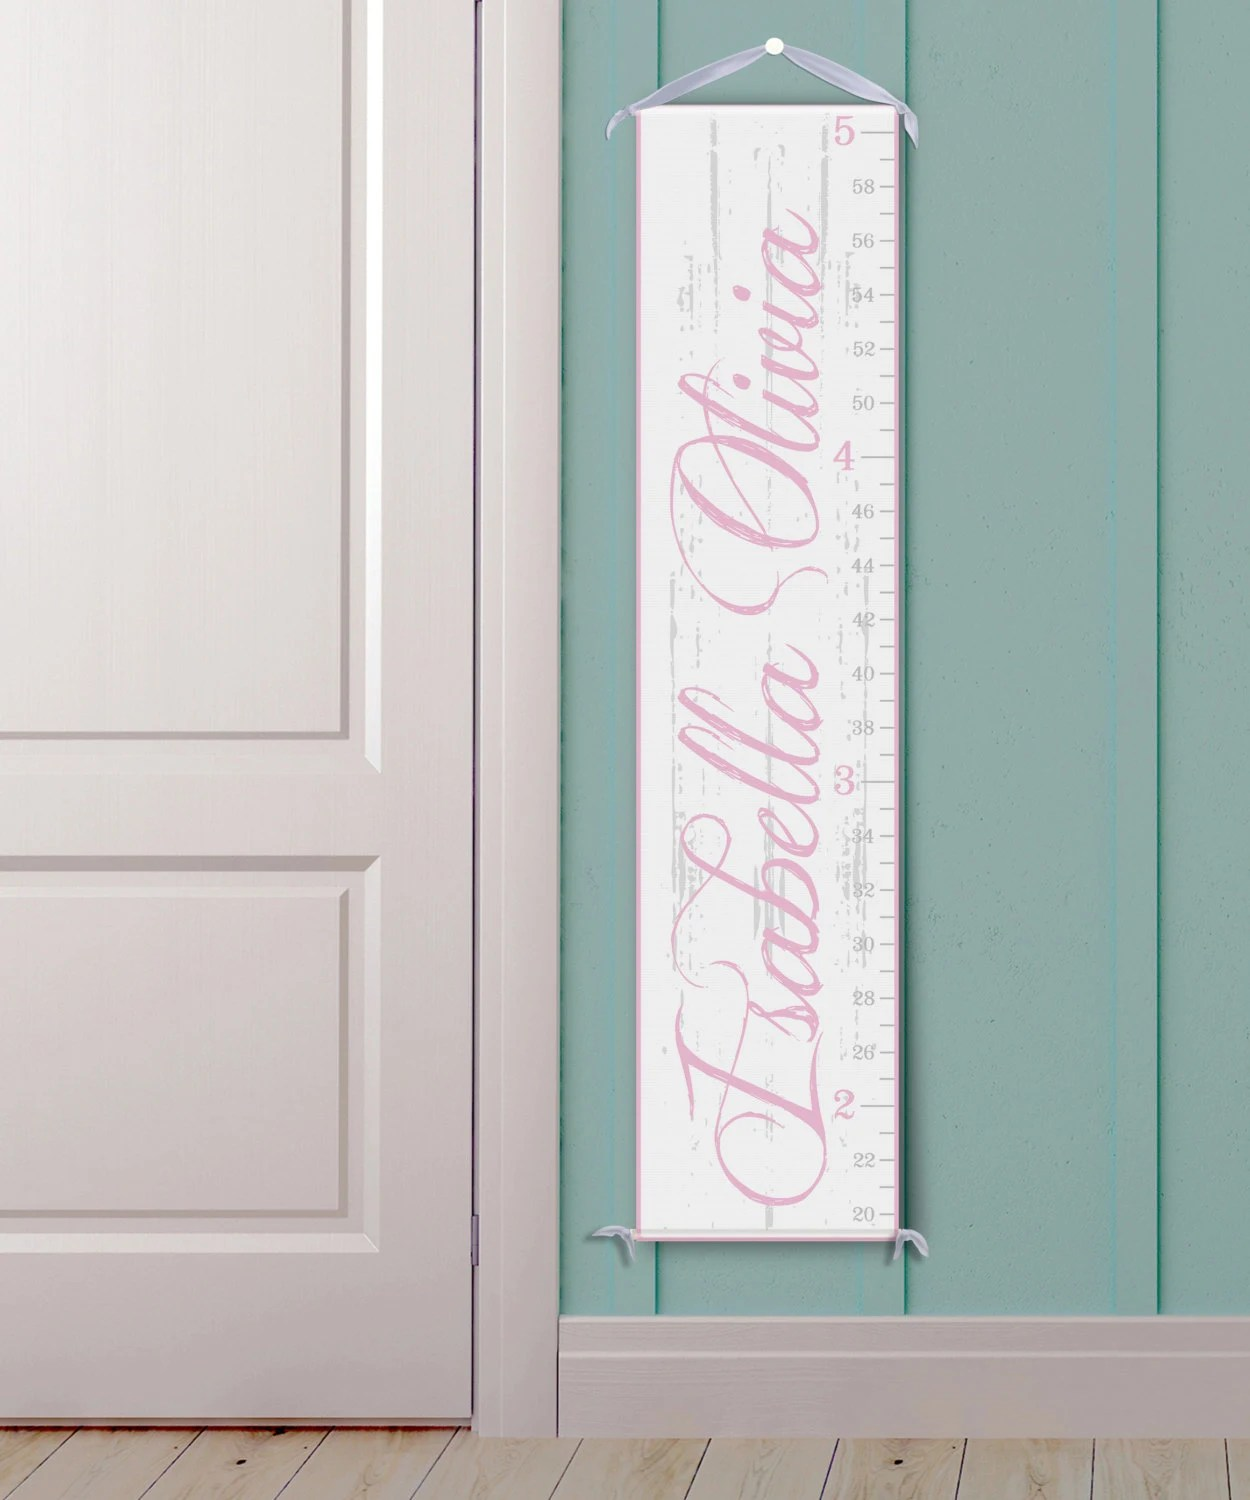 Personalized growth chart vintage inspired ruler in white and pink also etsy rh